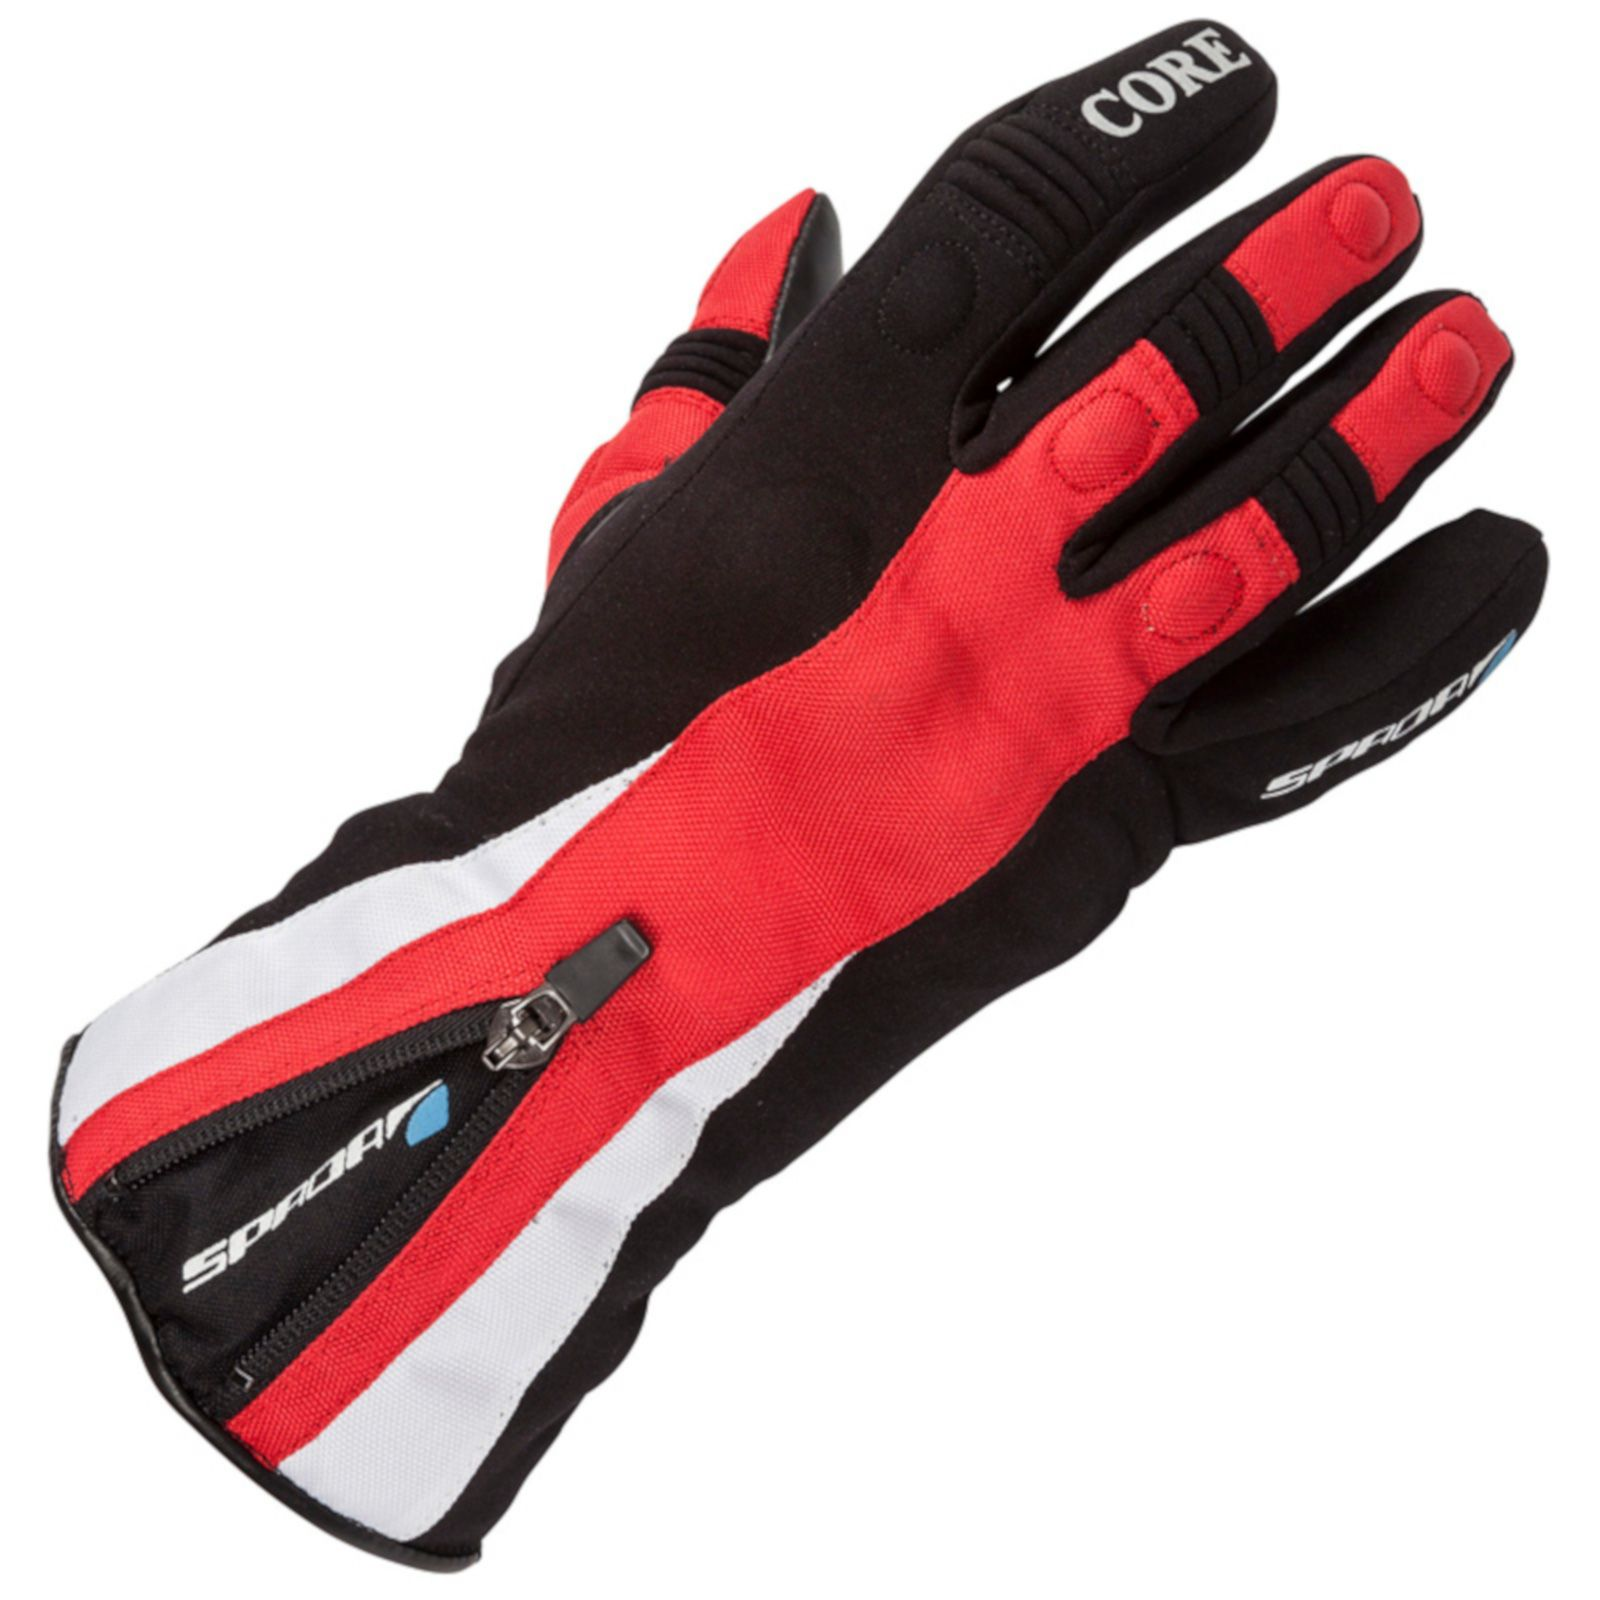 Spada Overmitts WP Motorcycle Gloves